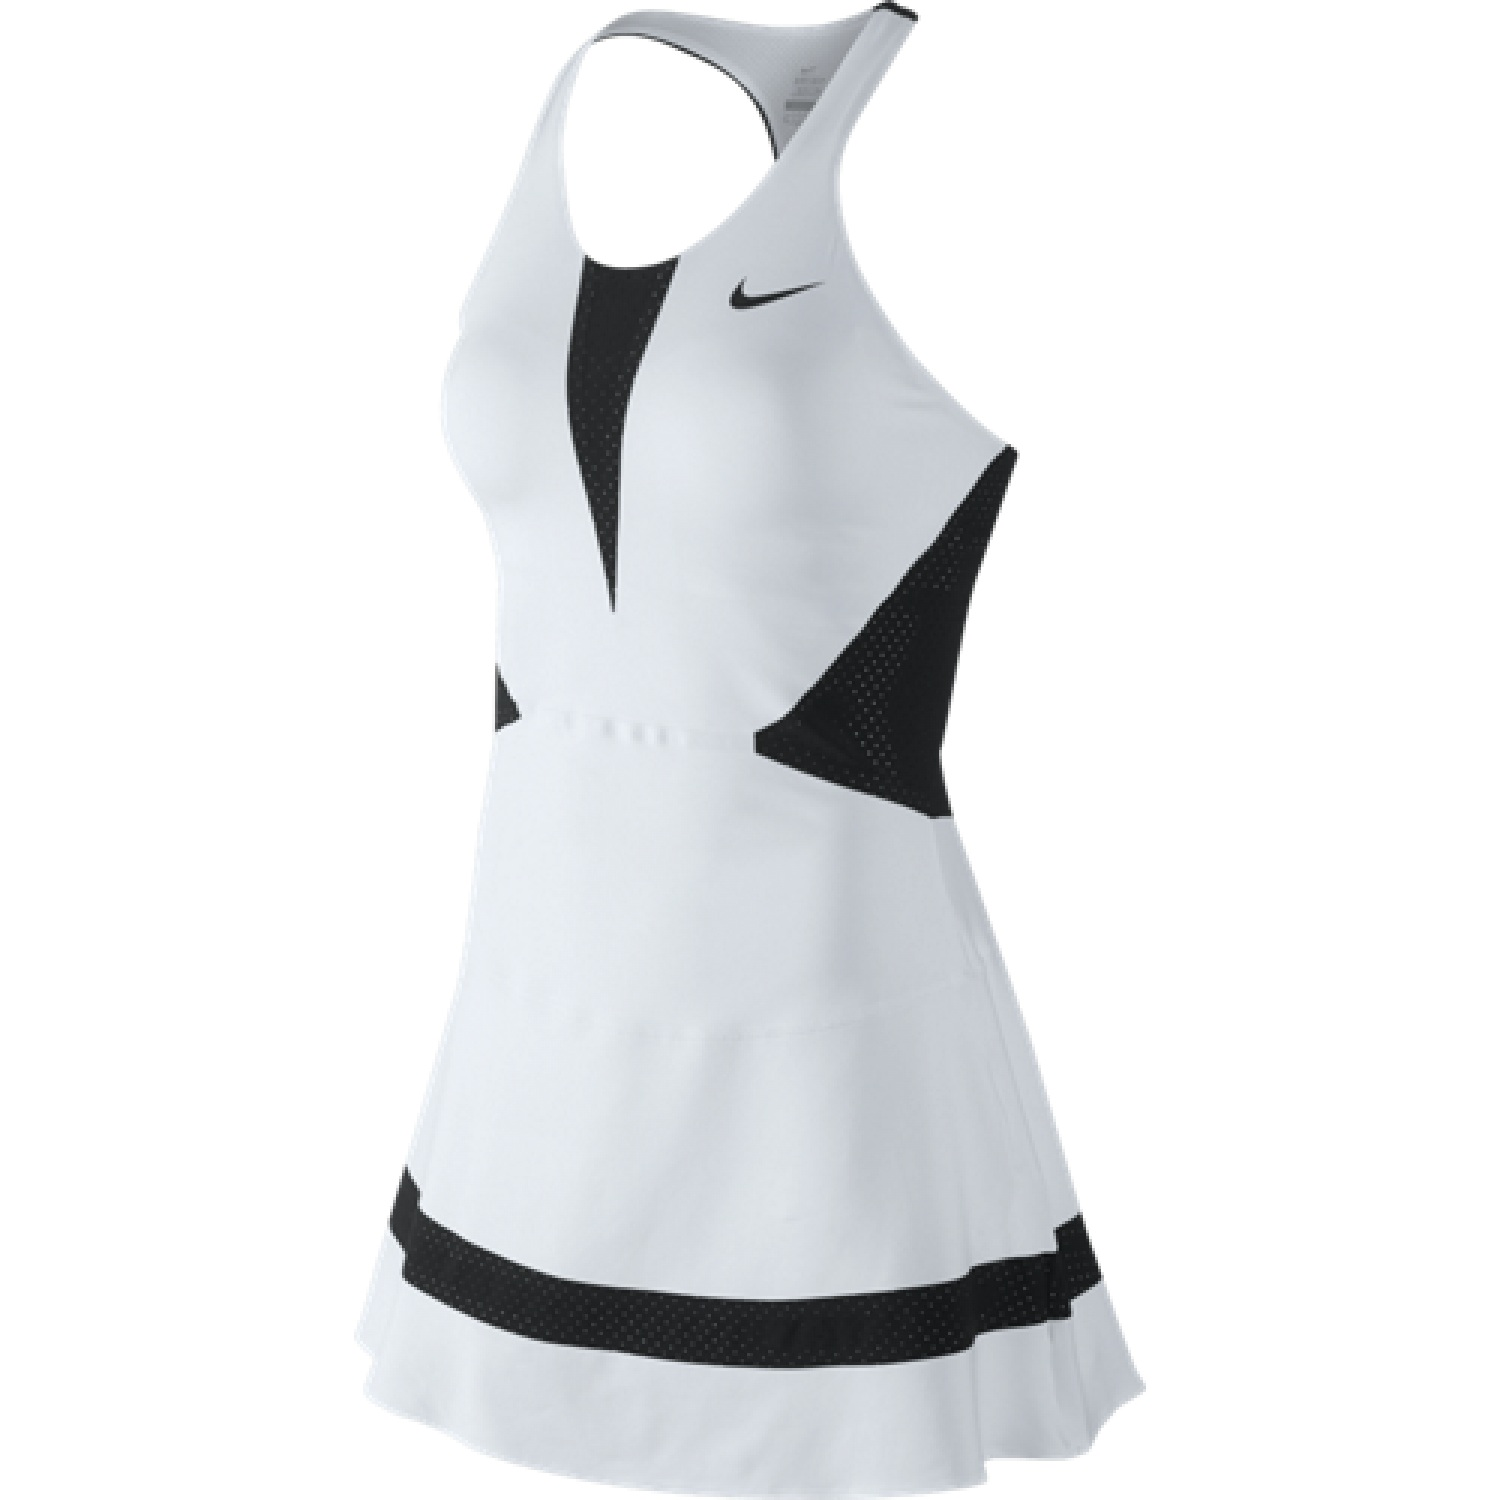 683106-100 Nike Premier Maria Night Dress, 683106-100 Nike Premier Maria Night Dress в Новосибирске, 683106-100 Nike Premier Maria Night Dress цена, 683106-100 Nike Premier Maria Night Dress купить, 683106-100 Nike Premier Maria Night Dress приобрети, 683106-100 Nike Premier Maria Night Dress дешево, 683106-100 Nike Premier Maria Night Dress с доставкой, 683106-100 Nike Premier Maria Night Dress от дистрибьютора.